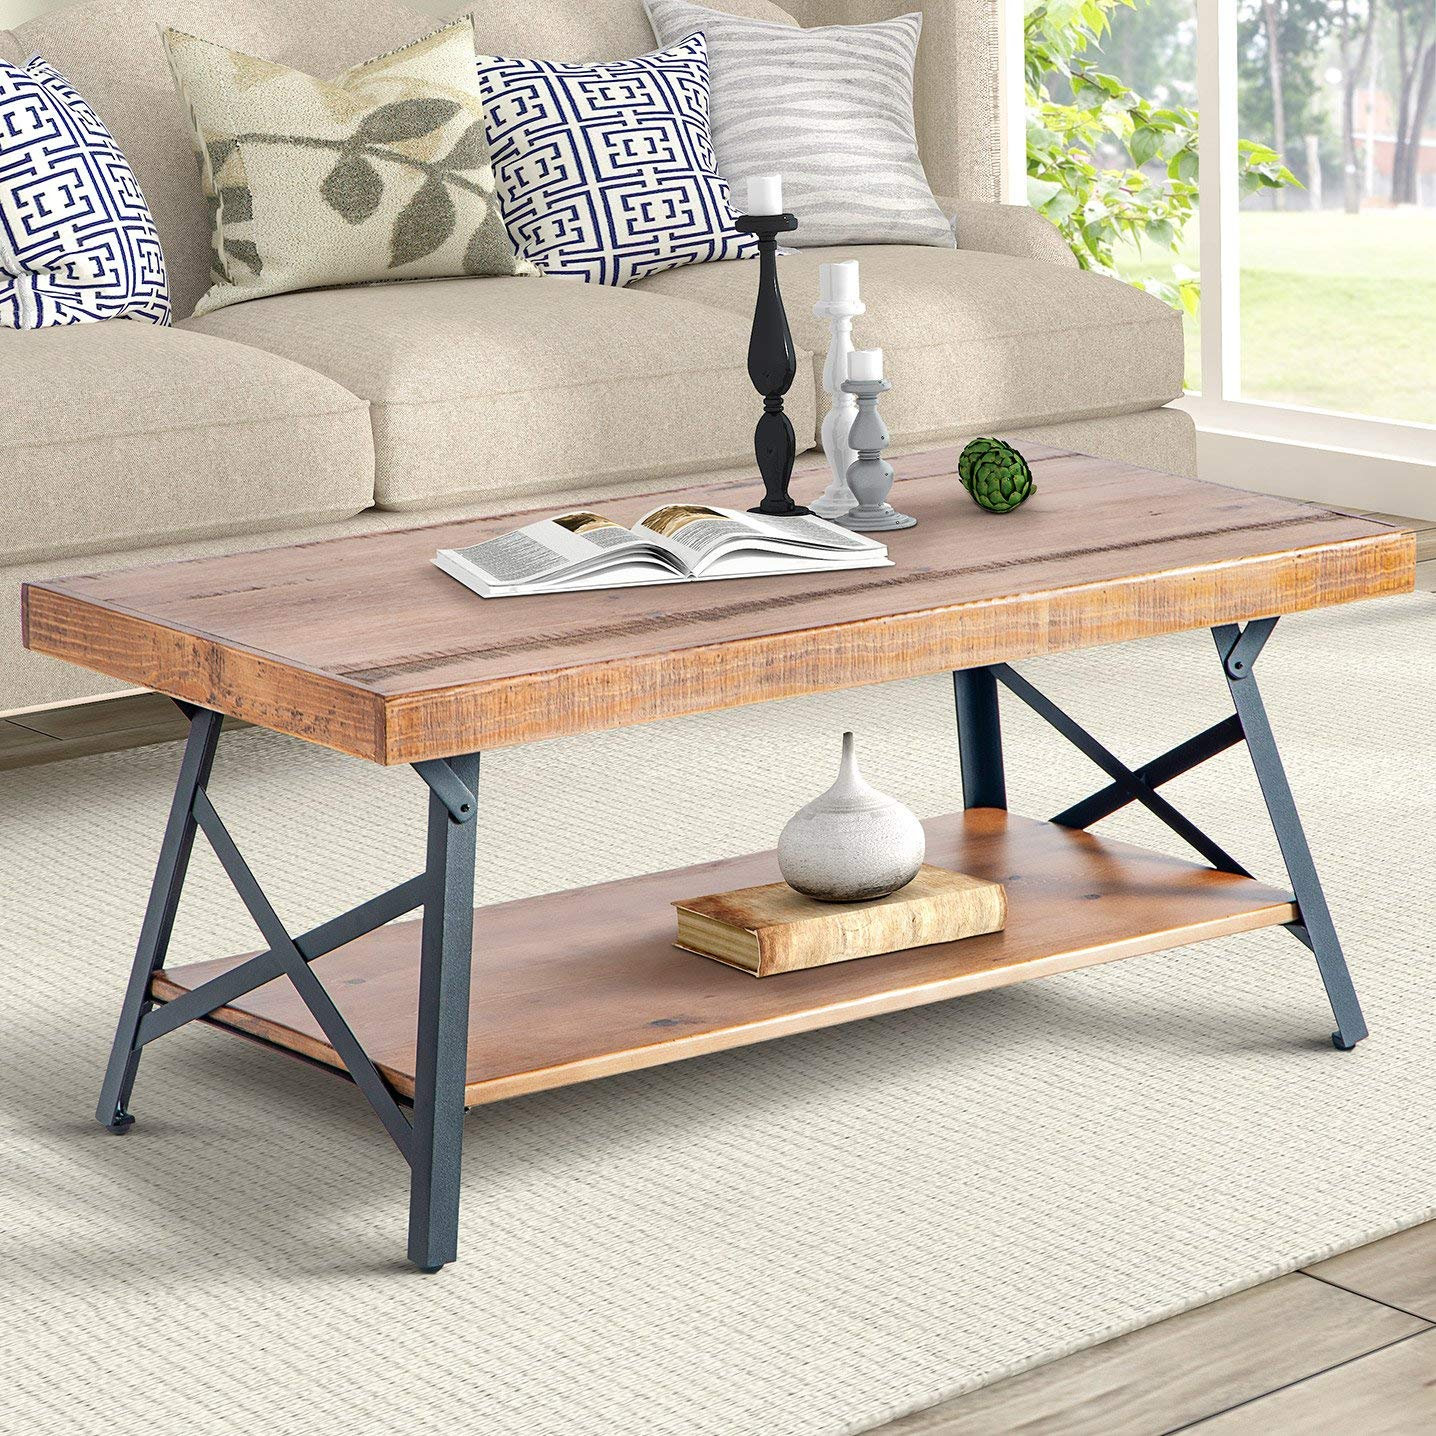 Rustic Brown Wood Coffee Table With Metal Legs